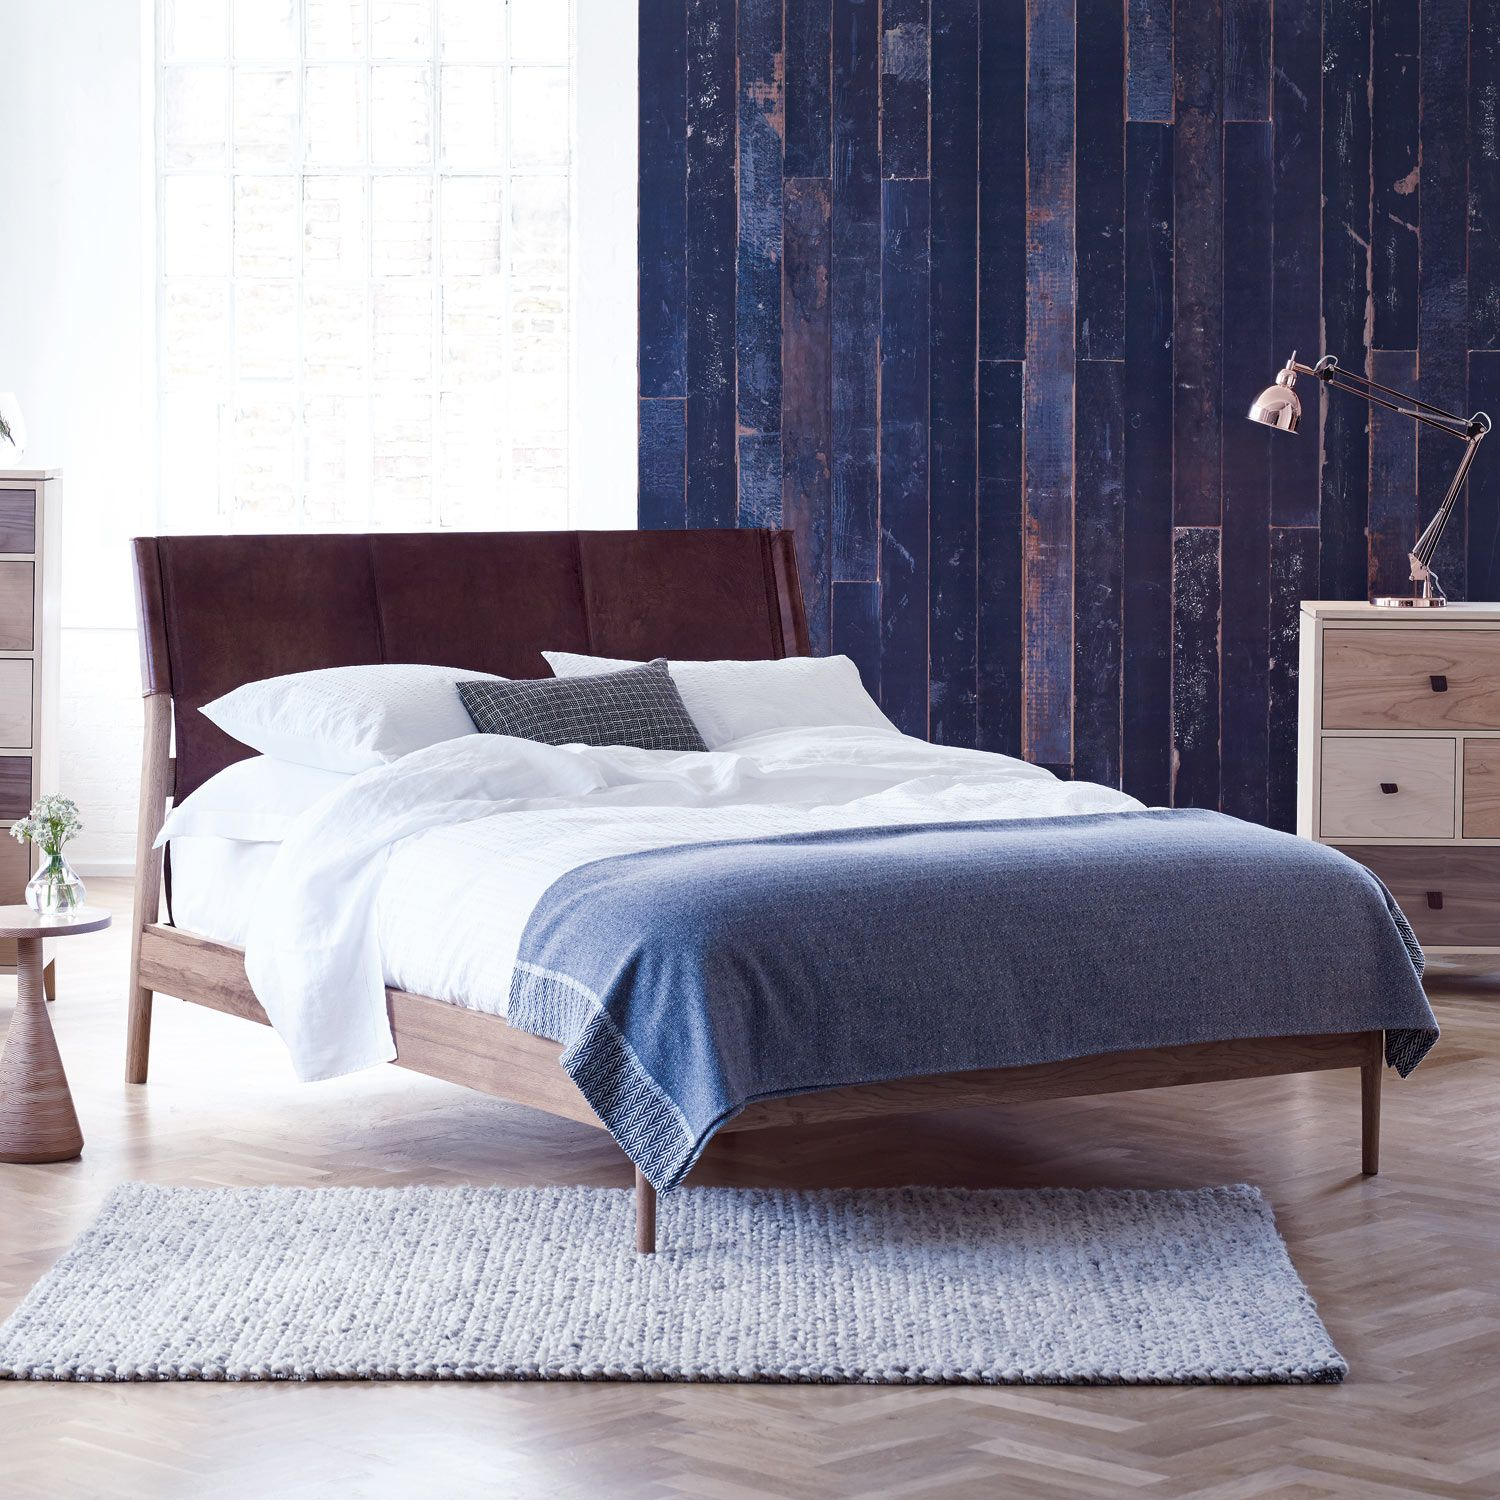 Heals Nordic King Size Bed With Leather Headboard - Bed